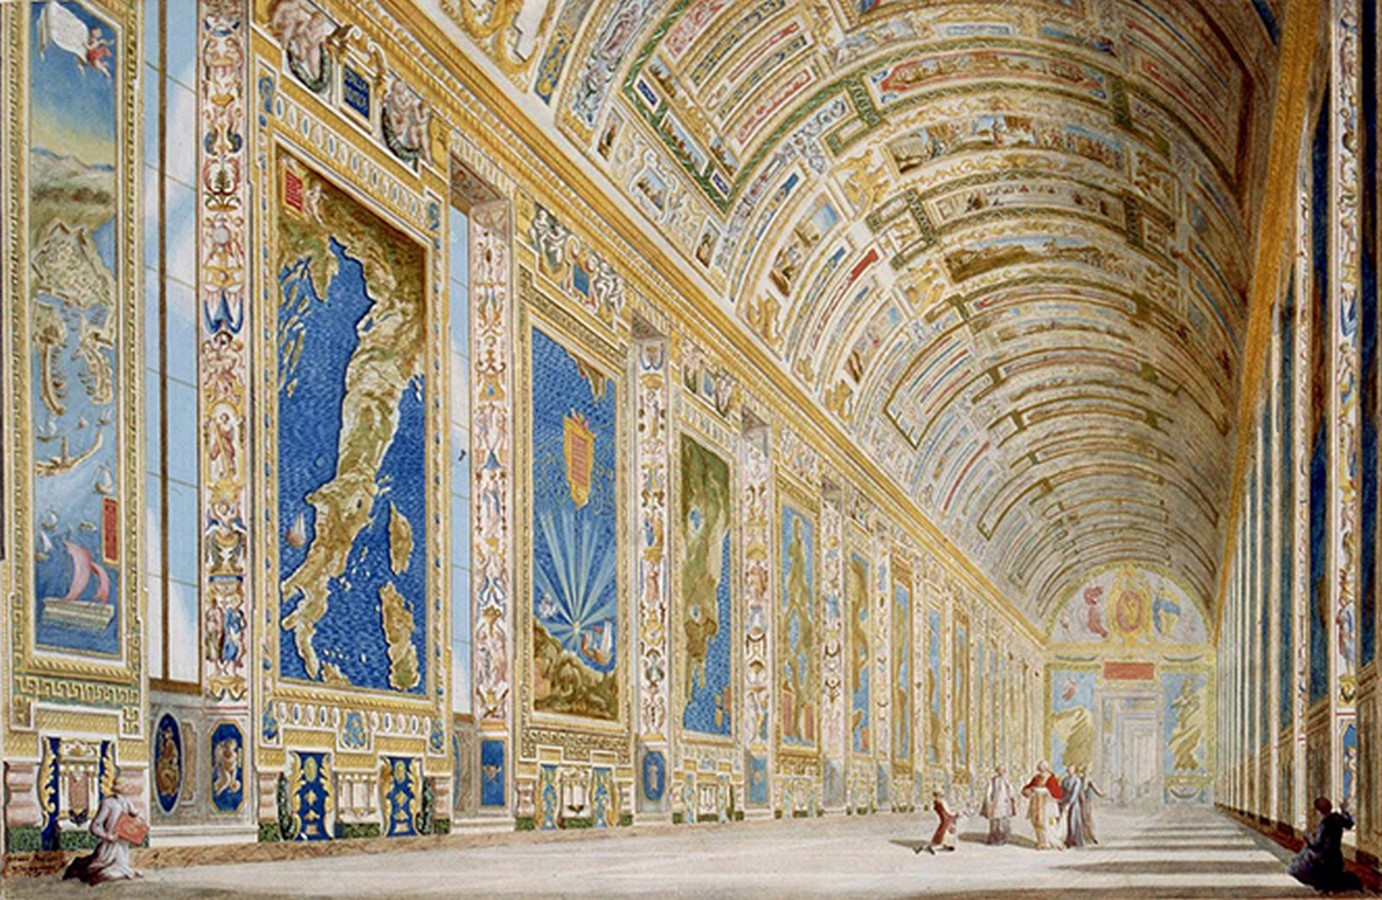 10 Things you did not know about Vatican Museums - Sheet13